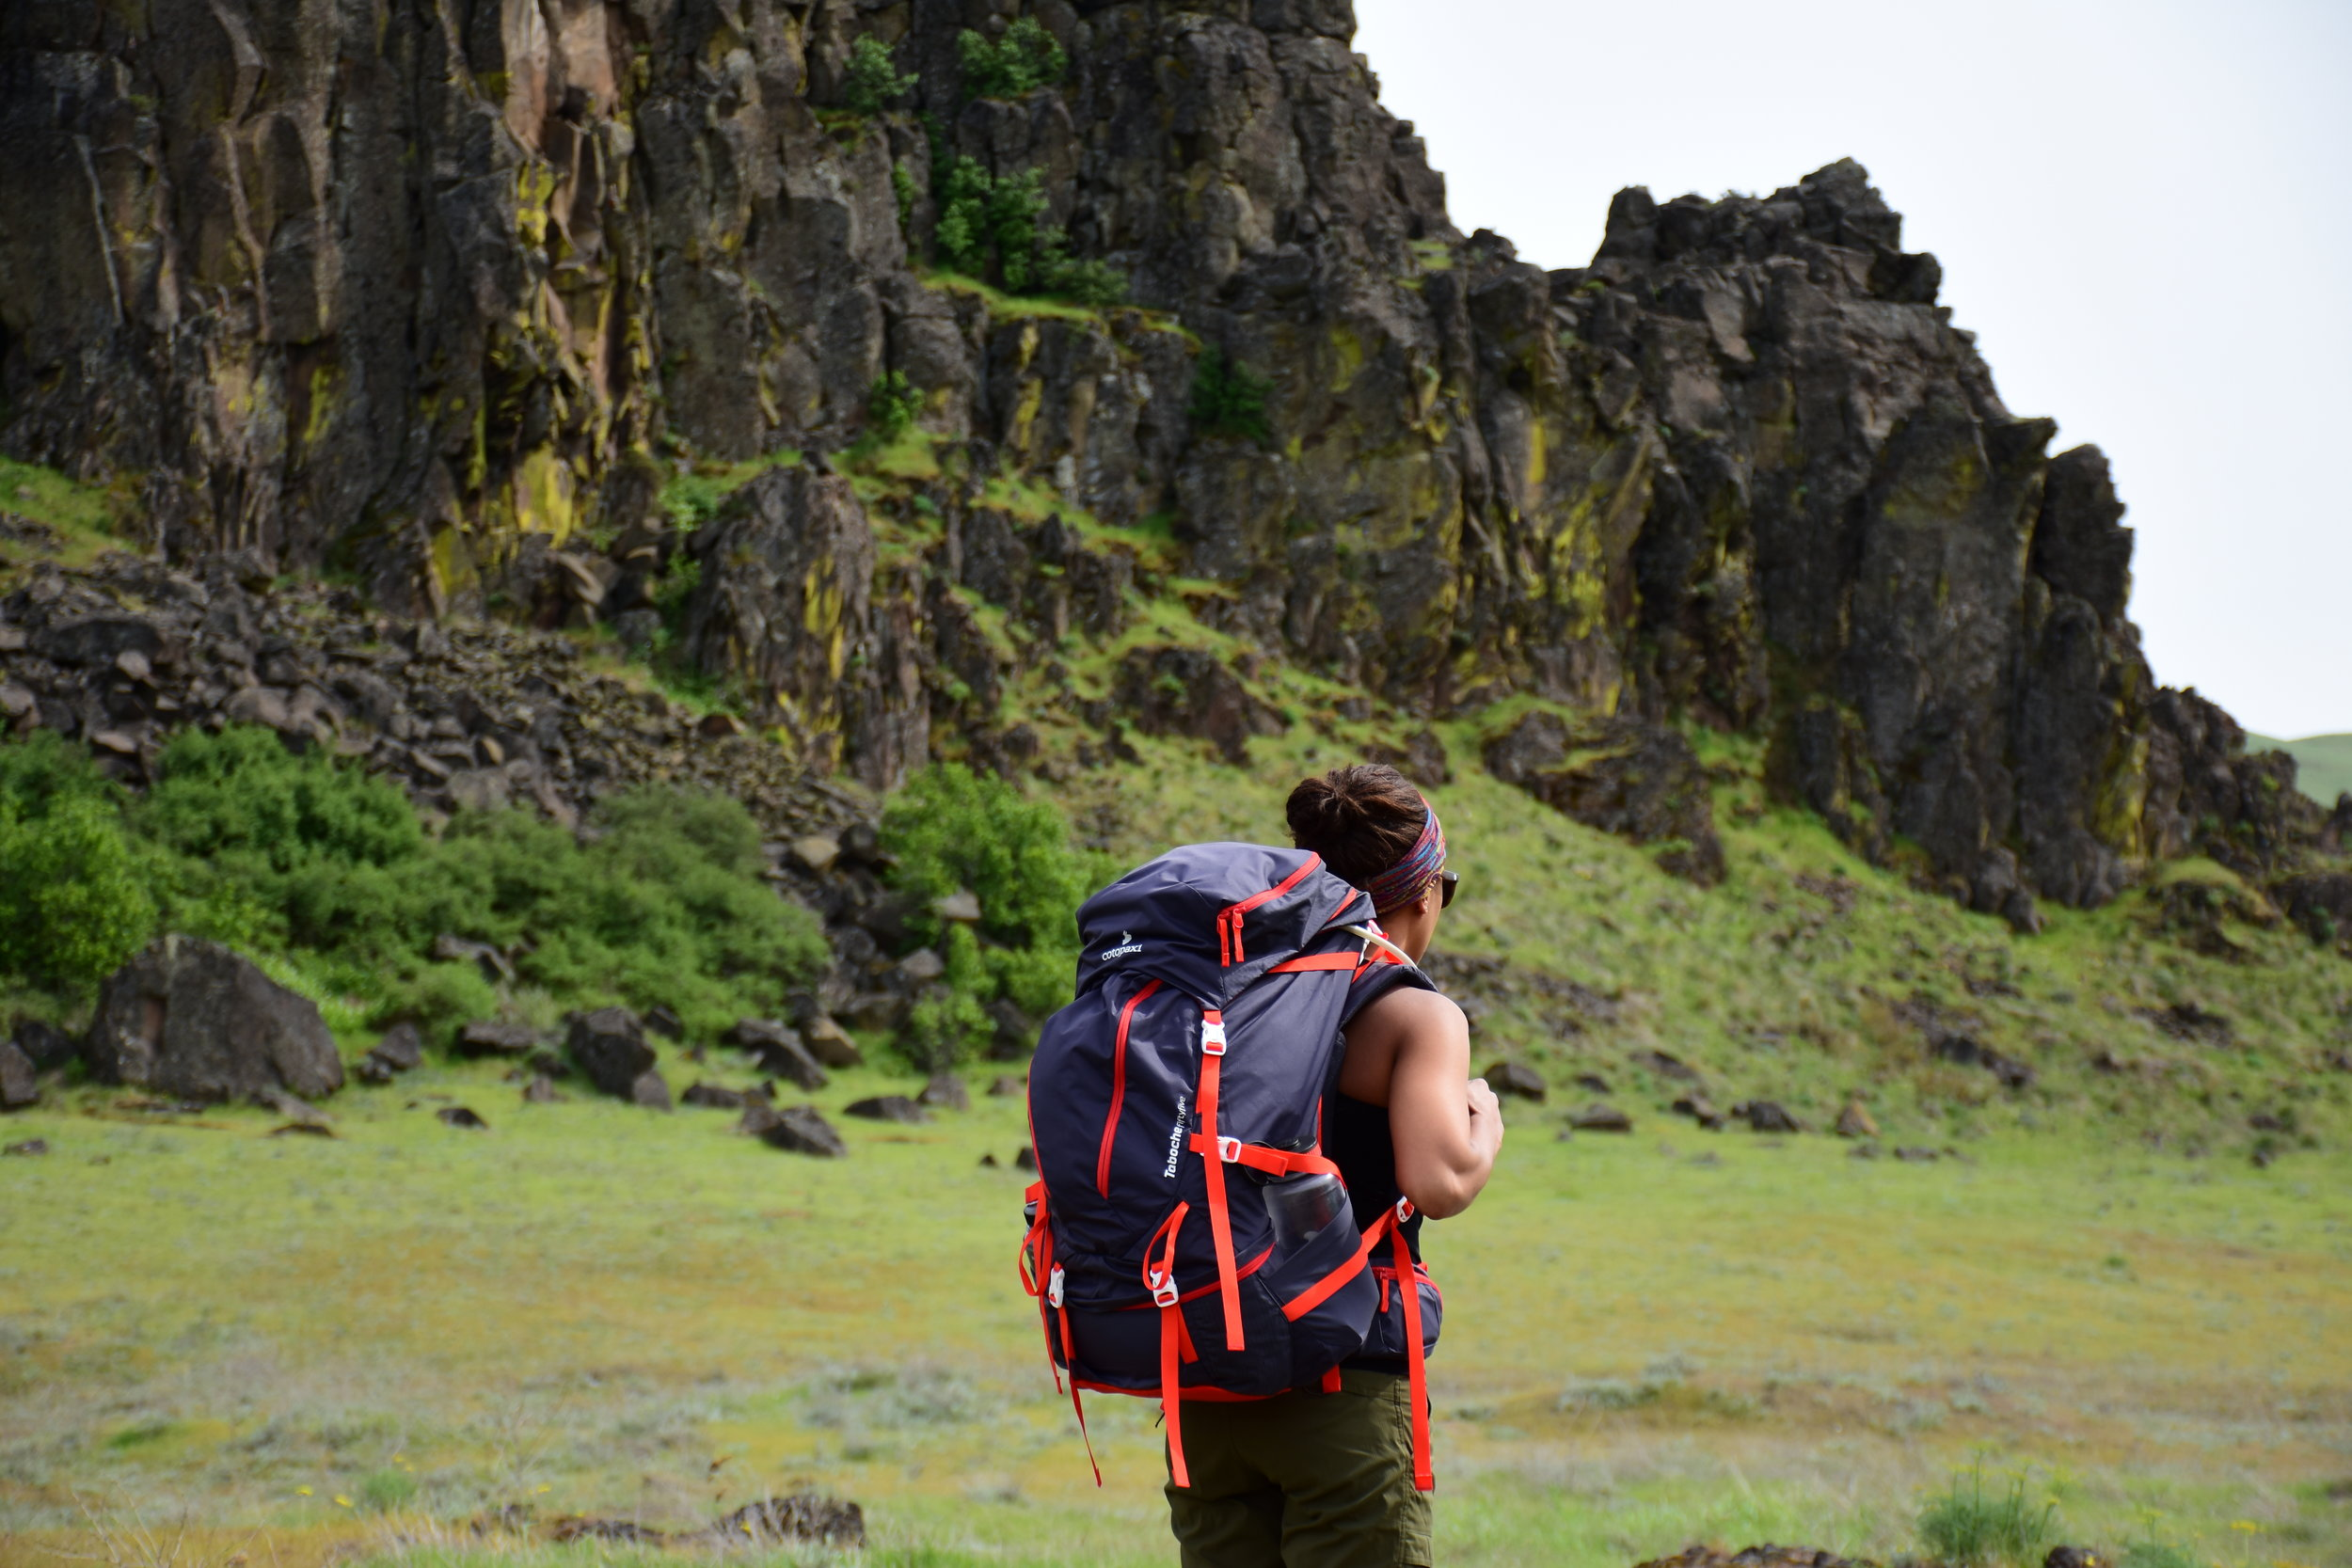 Testing the Cotopaxi Taboche 55L backpack during a hike at Horsethief Butte in the Columbia River Gorge on Yakama, Wasco and Wishram ancestral land.  Photo courtesy of Nathan Kaul